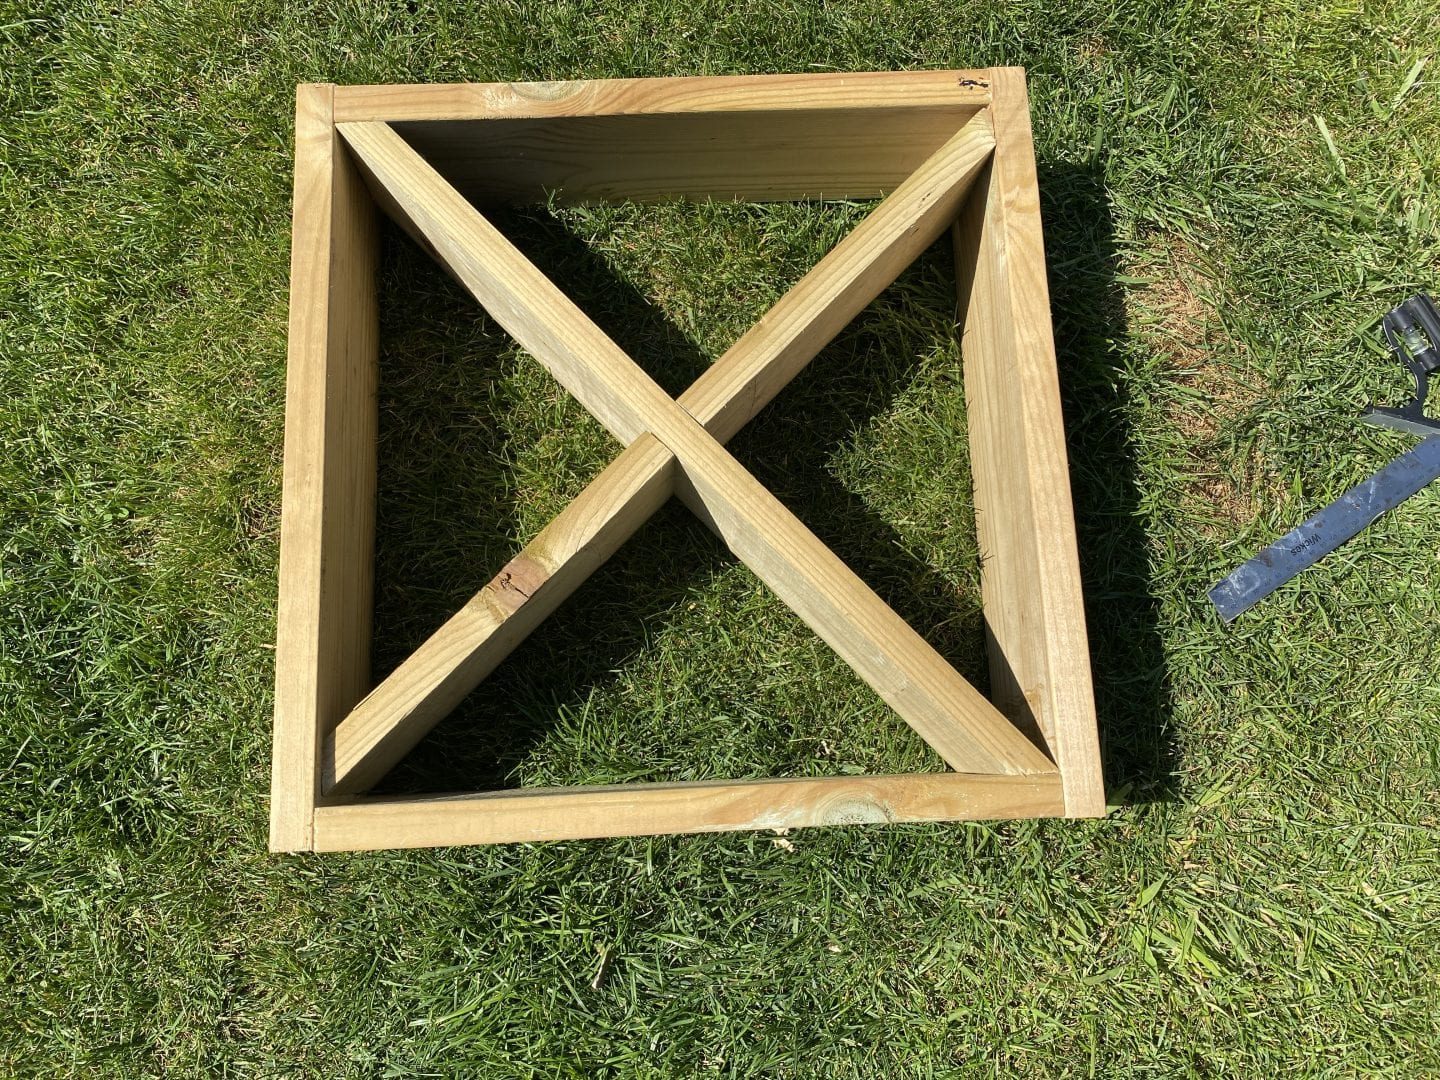 square wooden frame, with two diagonal pieces of timber to divide it into 4 sections